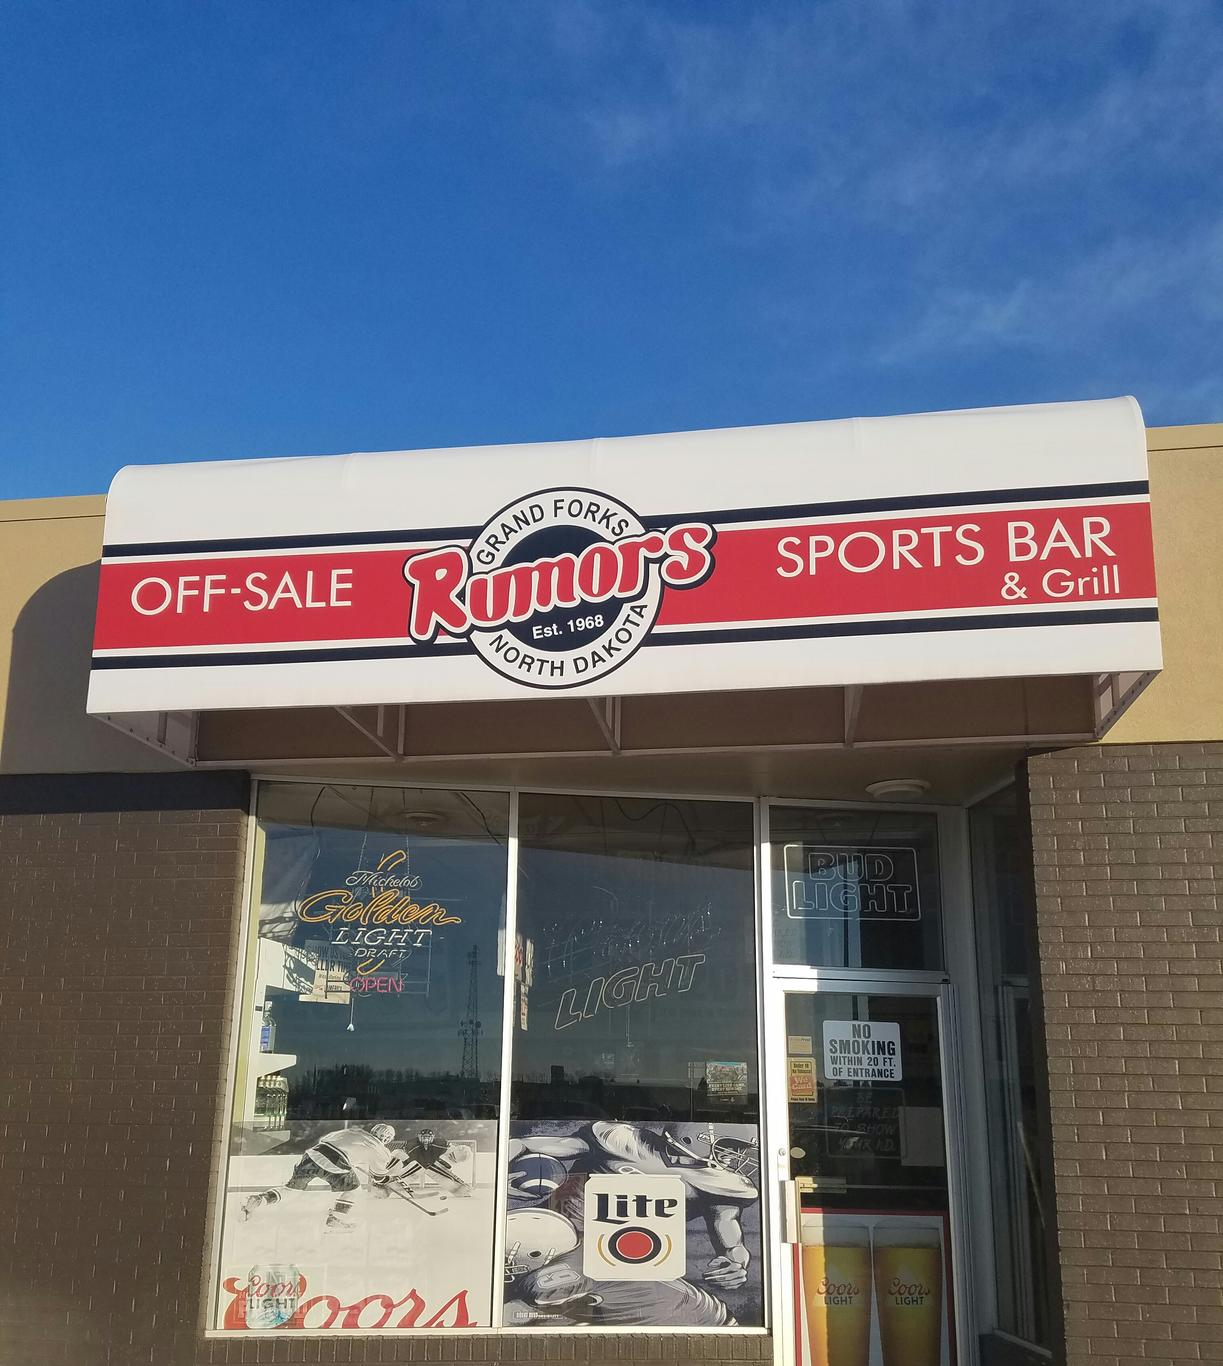 Rumors Bar And Grill >> Rumors Sports Bar Grill And Casino Home Of The Beer Tower